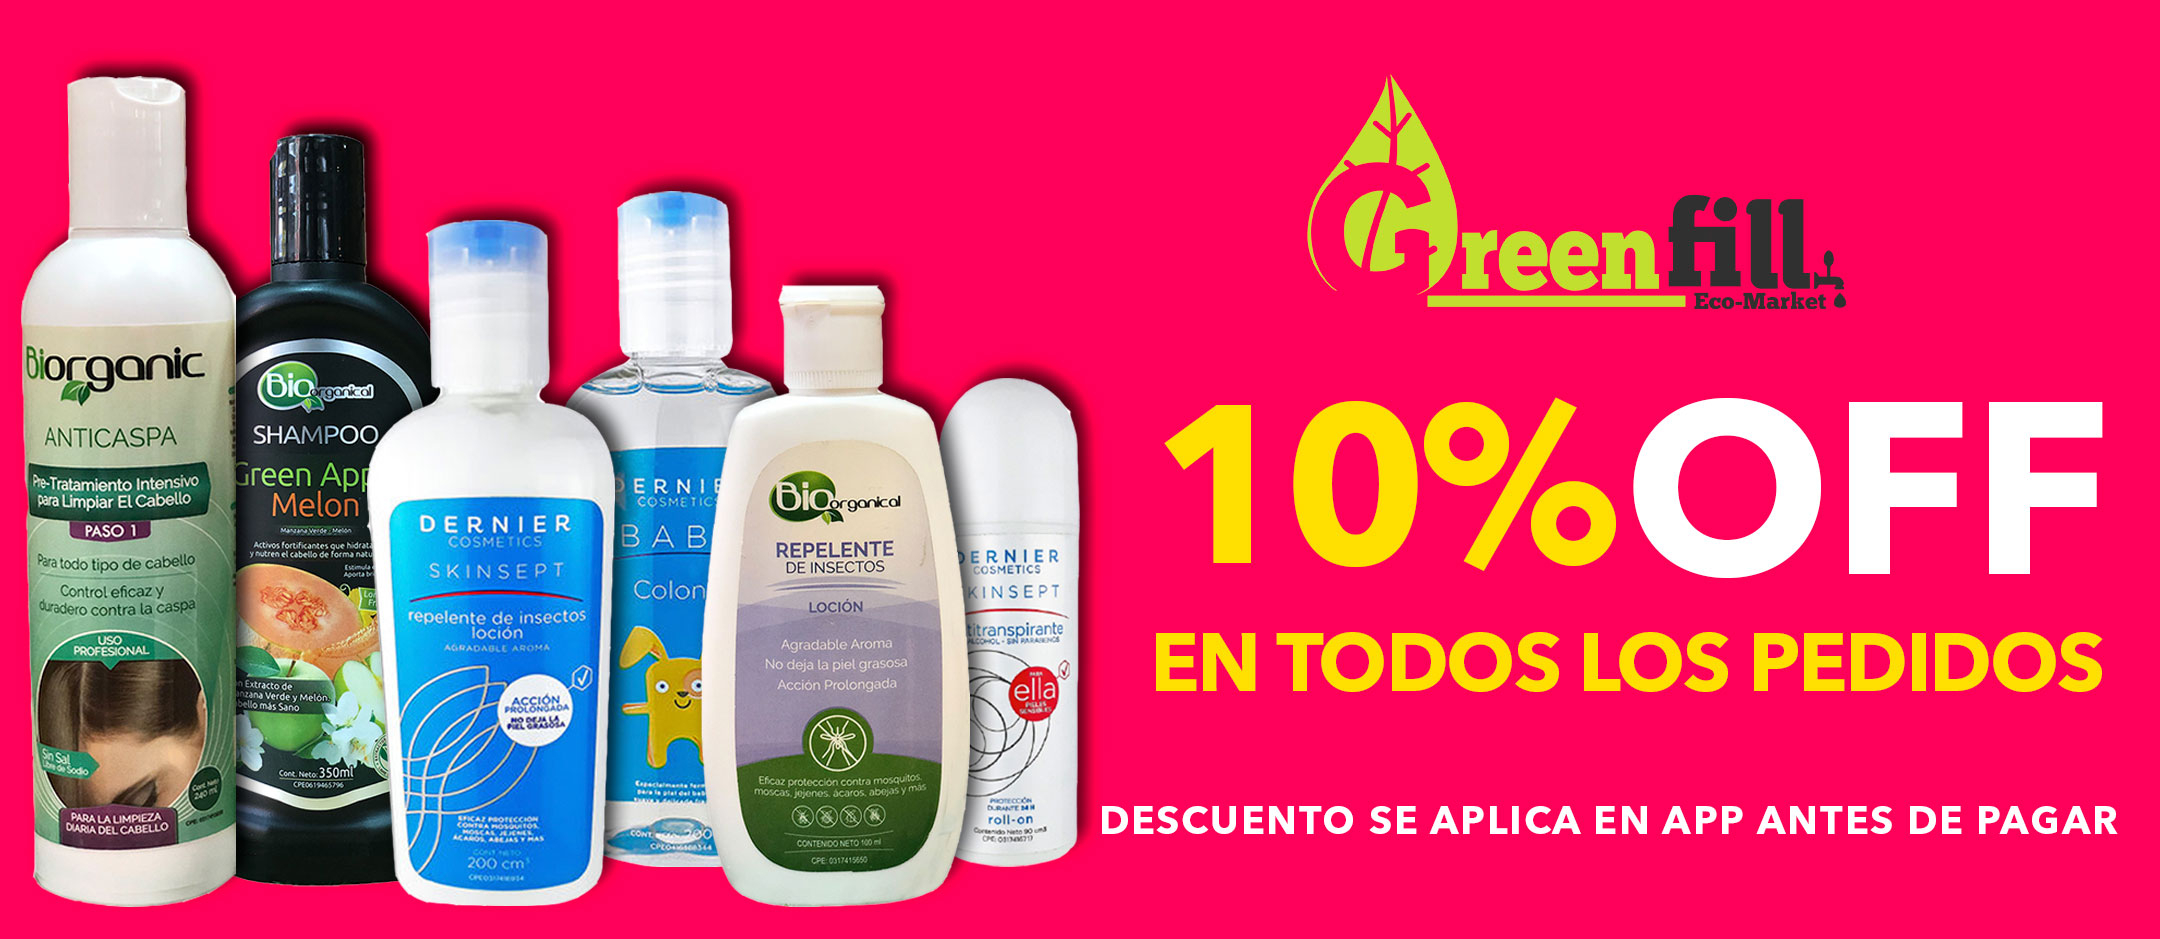 Promo Greenfill